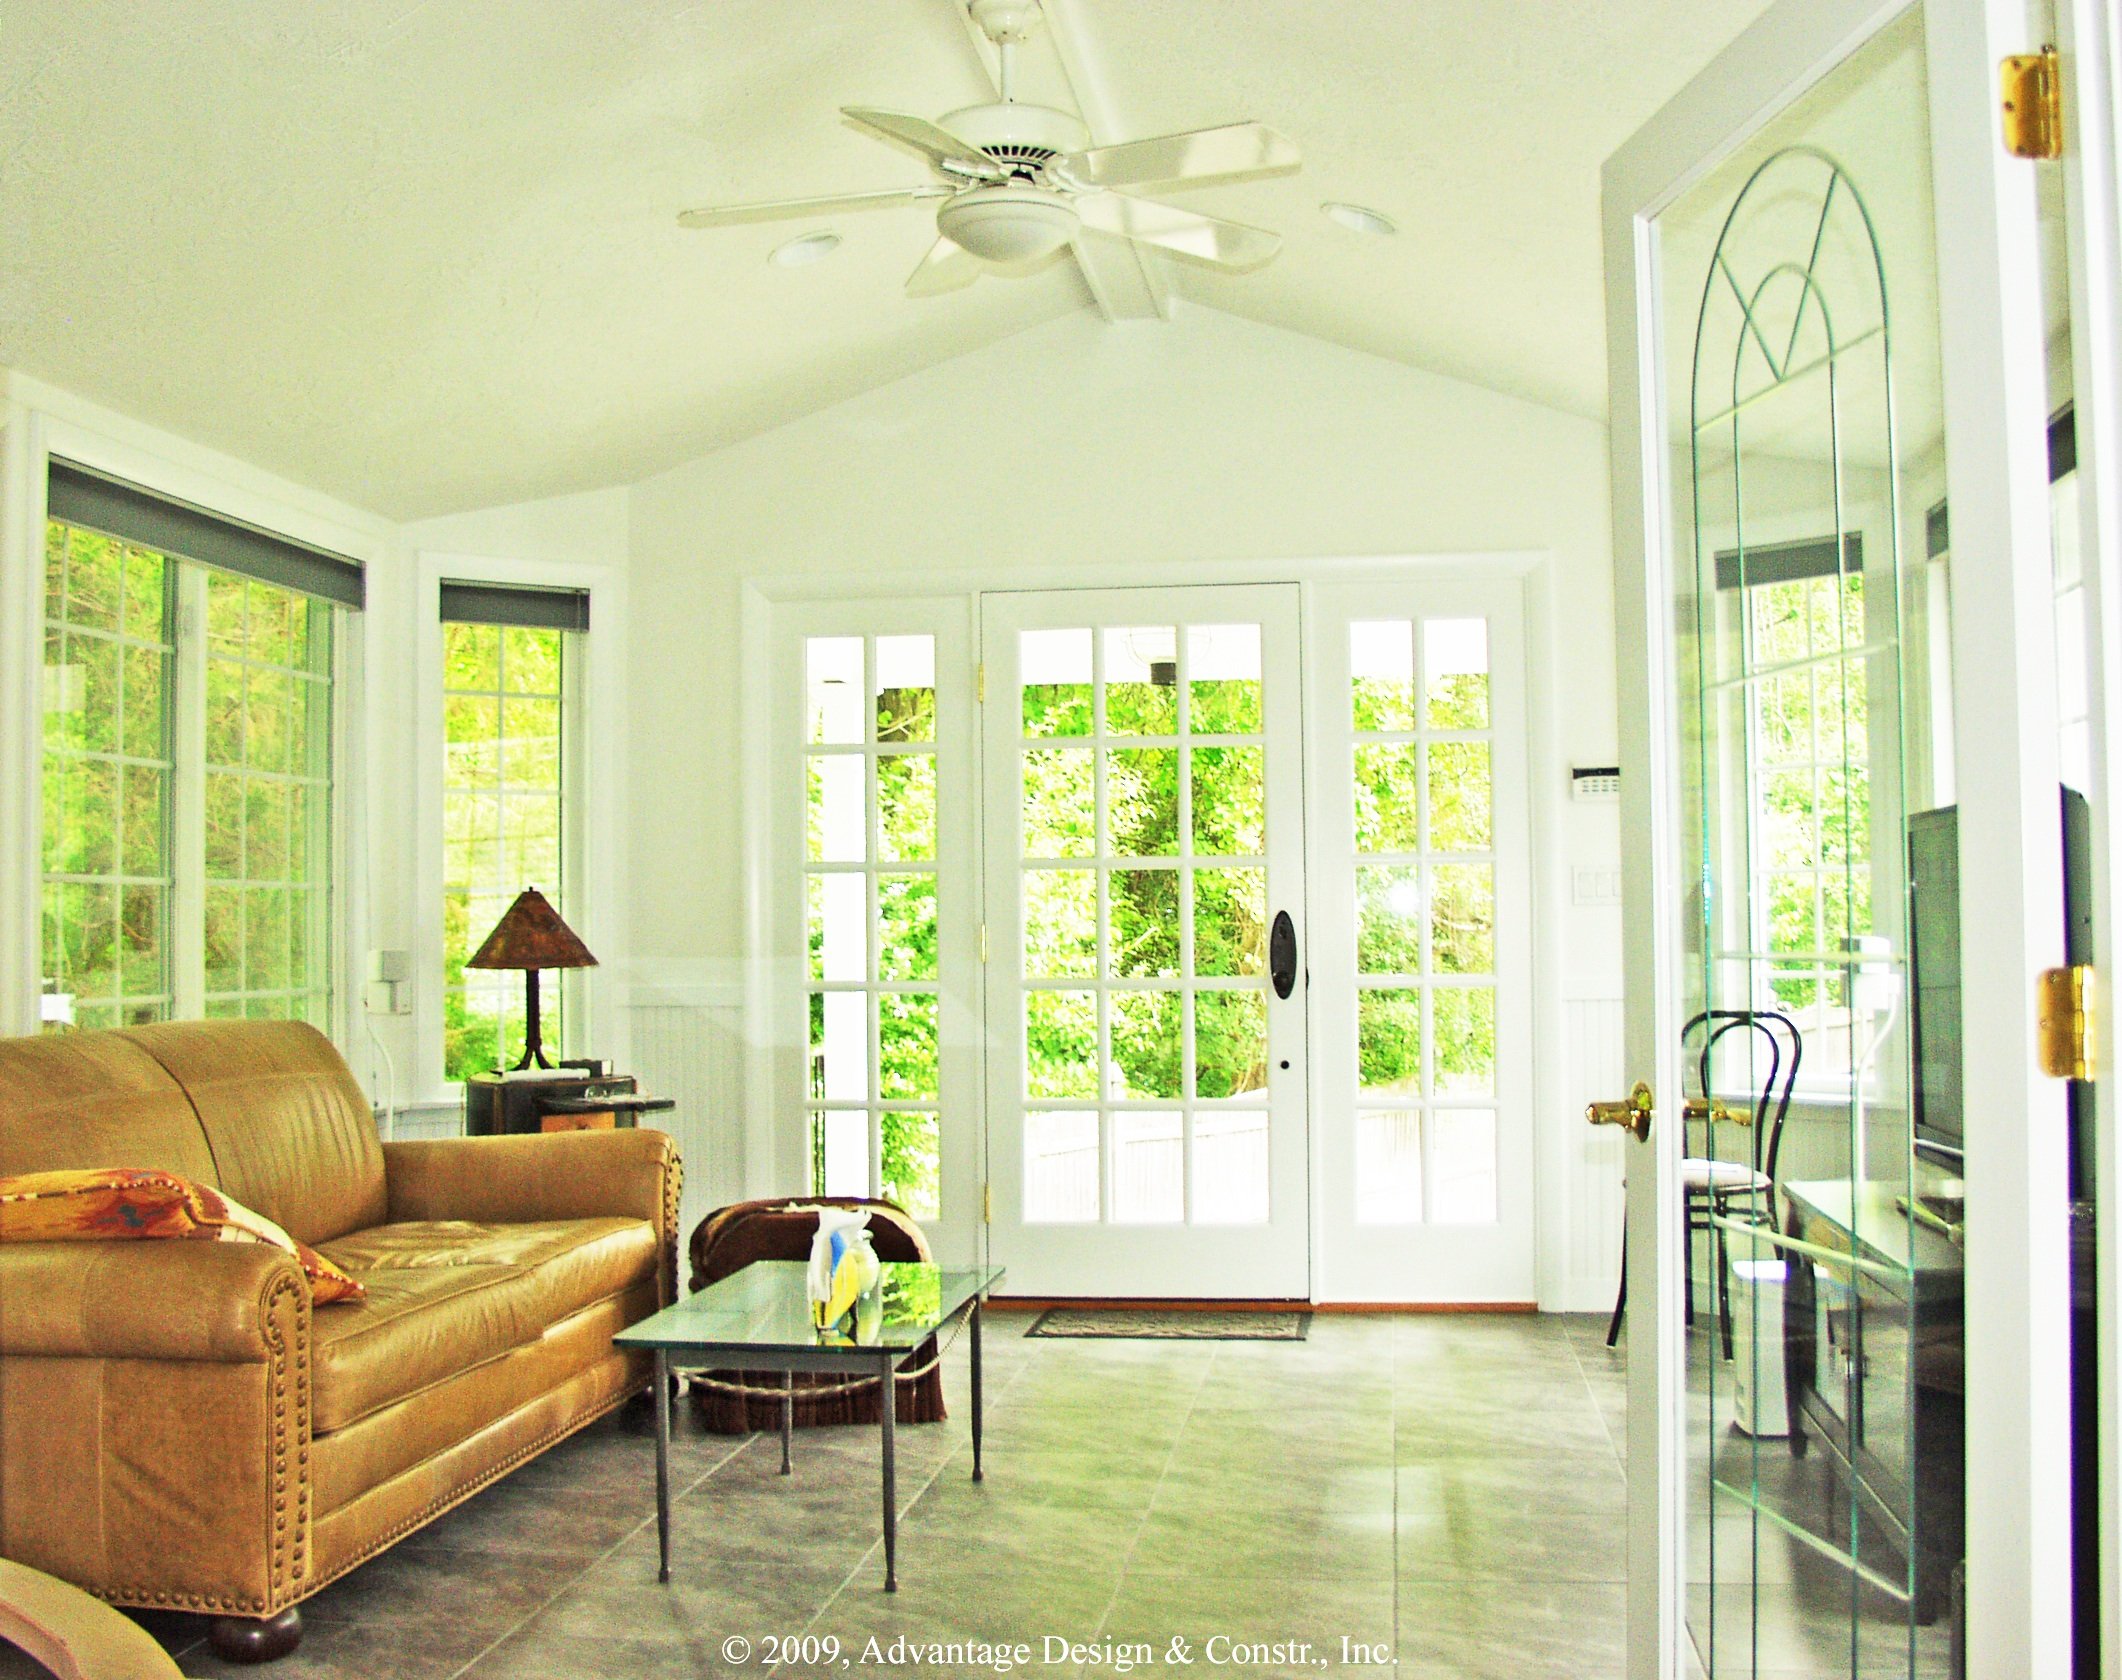 Factors That Determine The Cost Of A Sunroom on central heating cooling unit